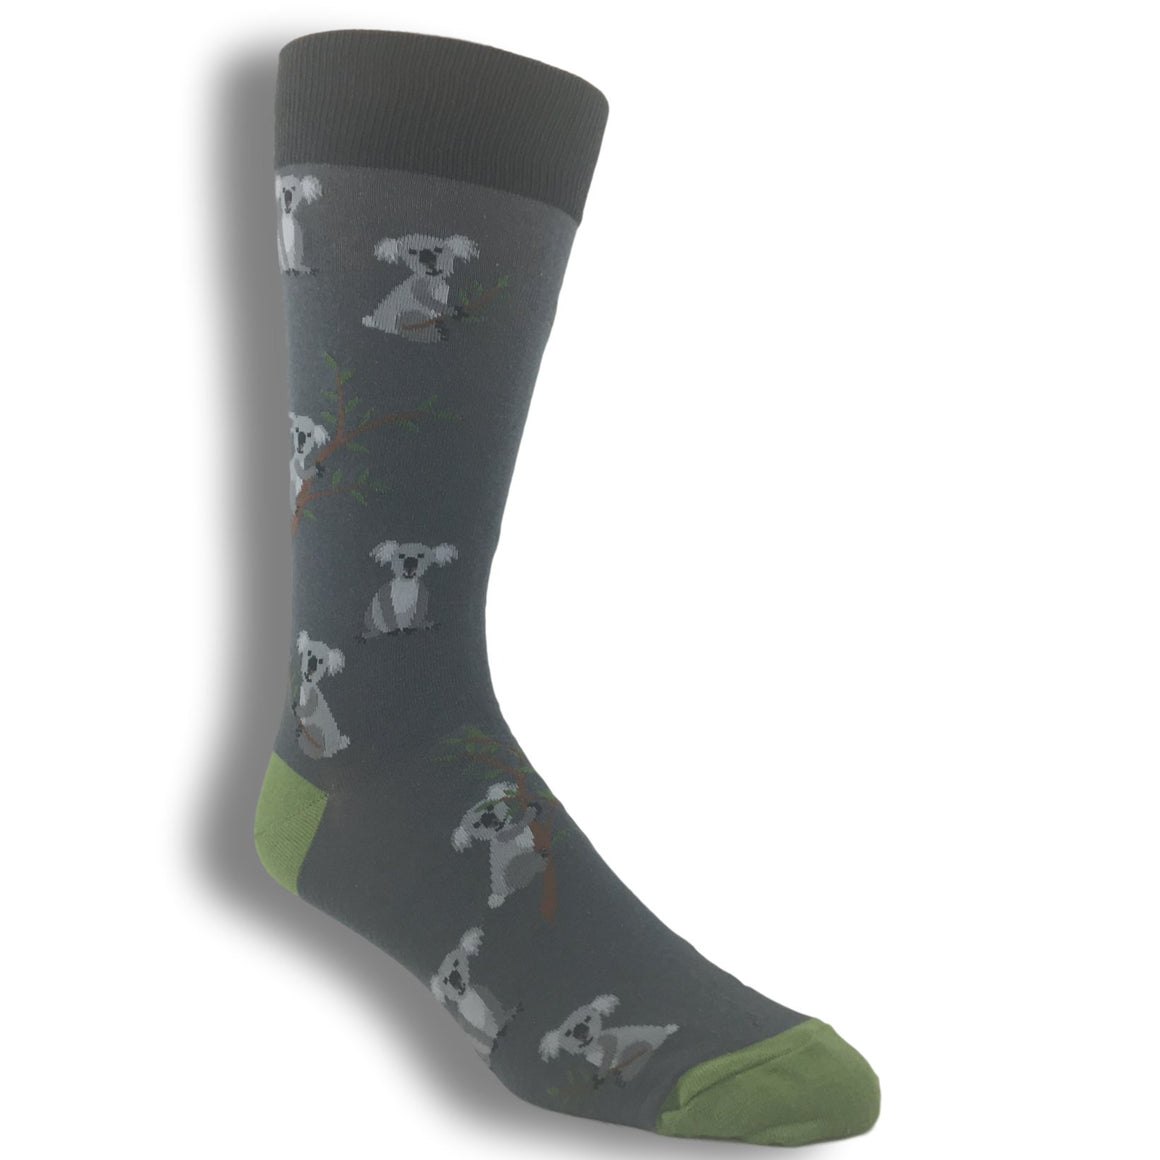 Koalas In The Trees Socks